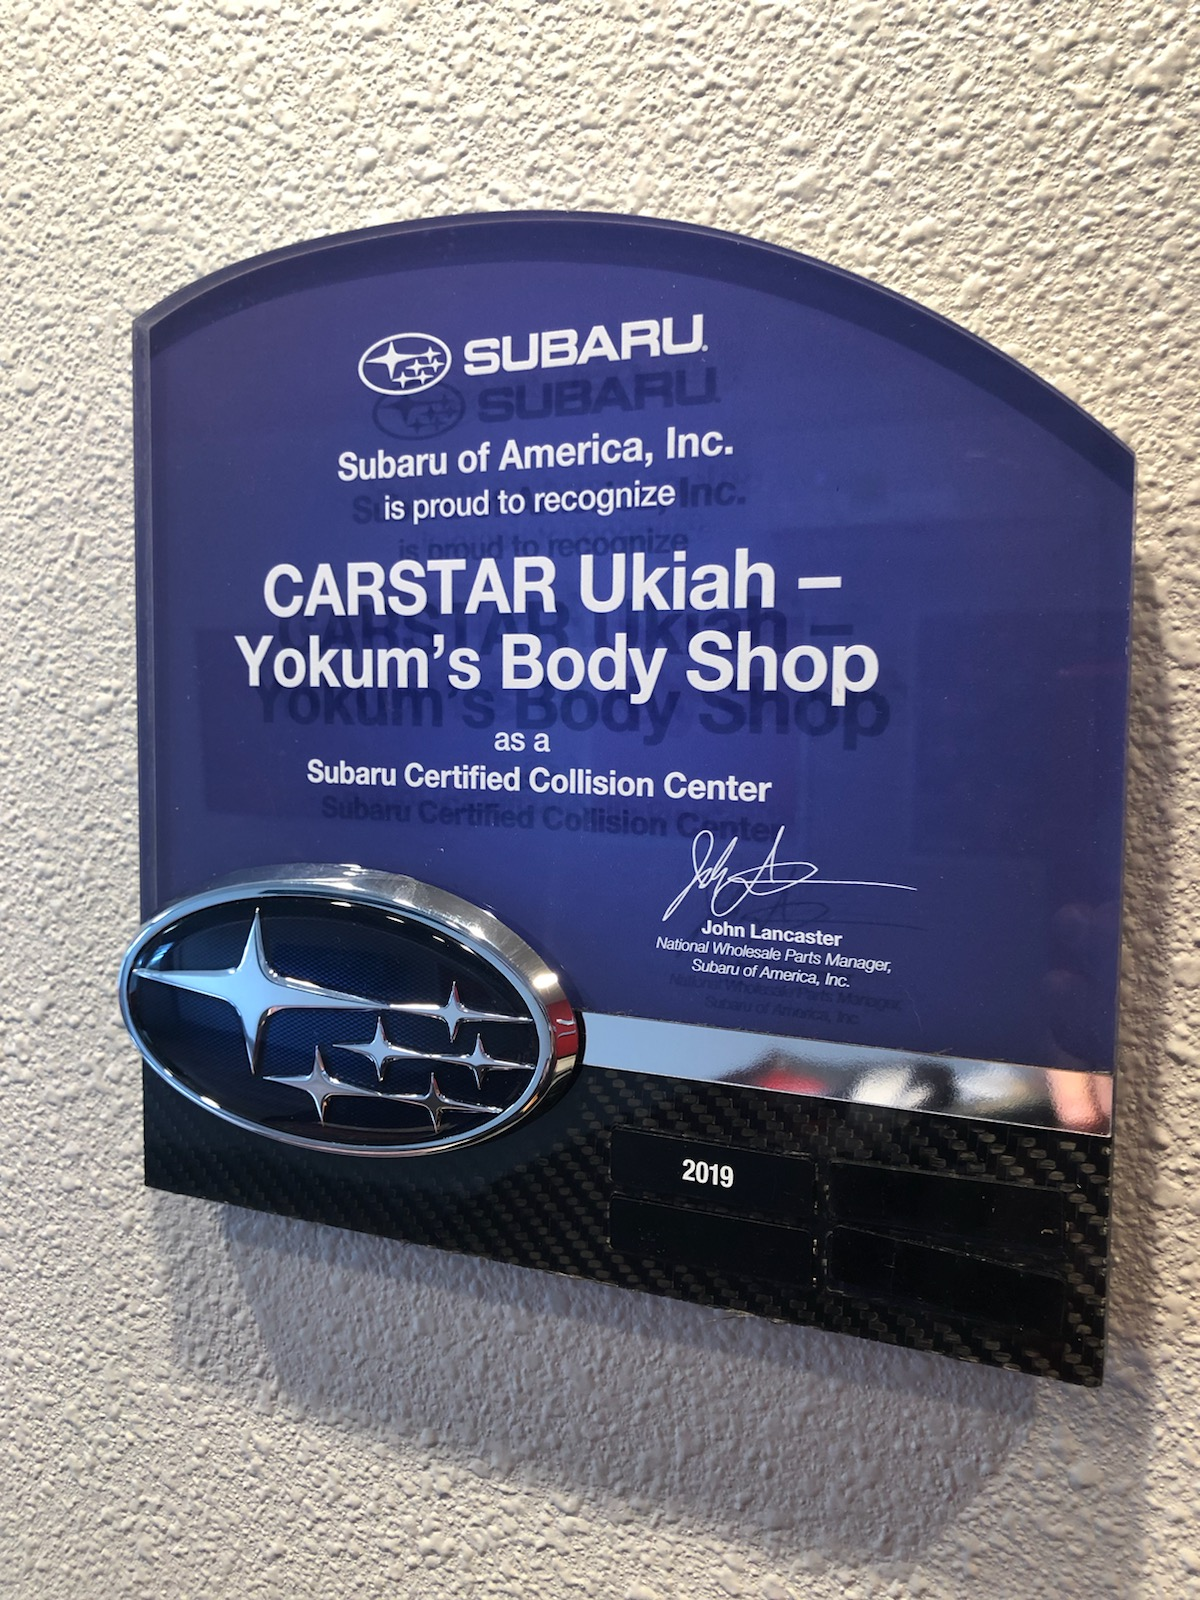 Carstar | Subaru Certified Collision Center - Ukiah - Yokum's Body Shop